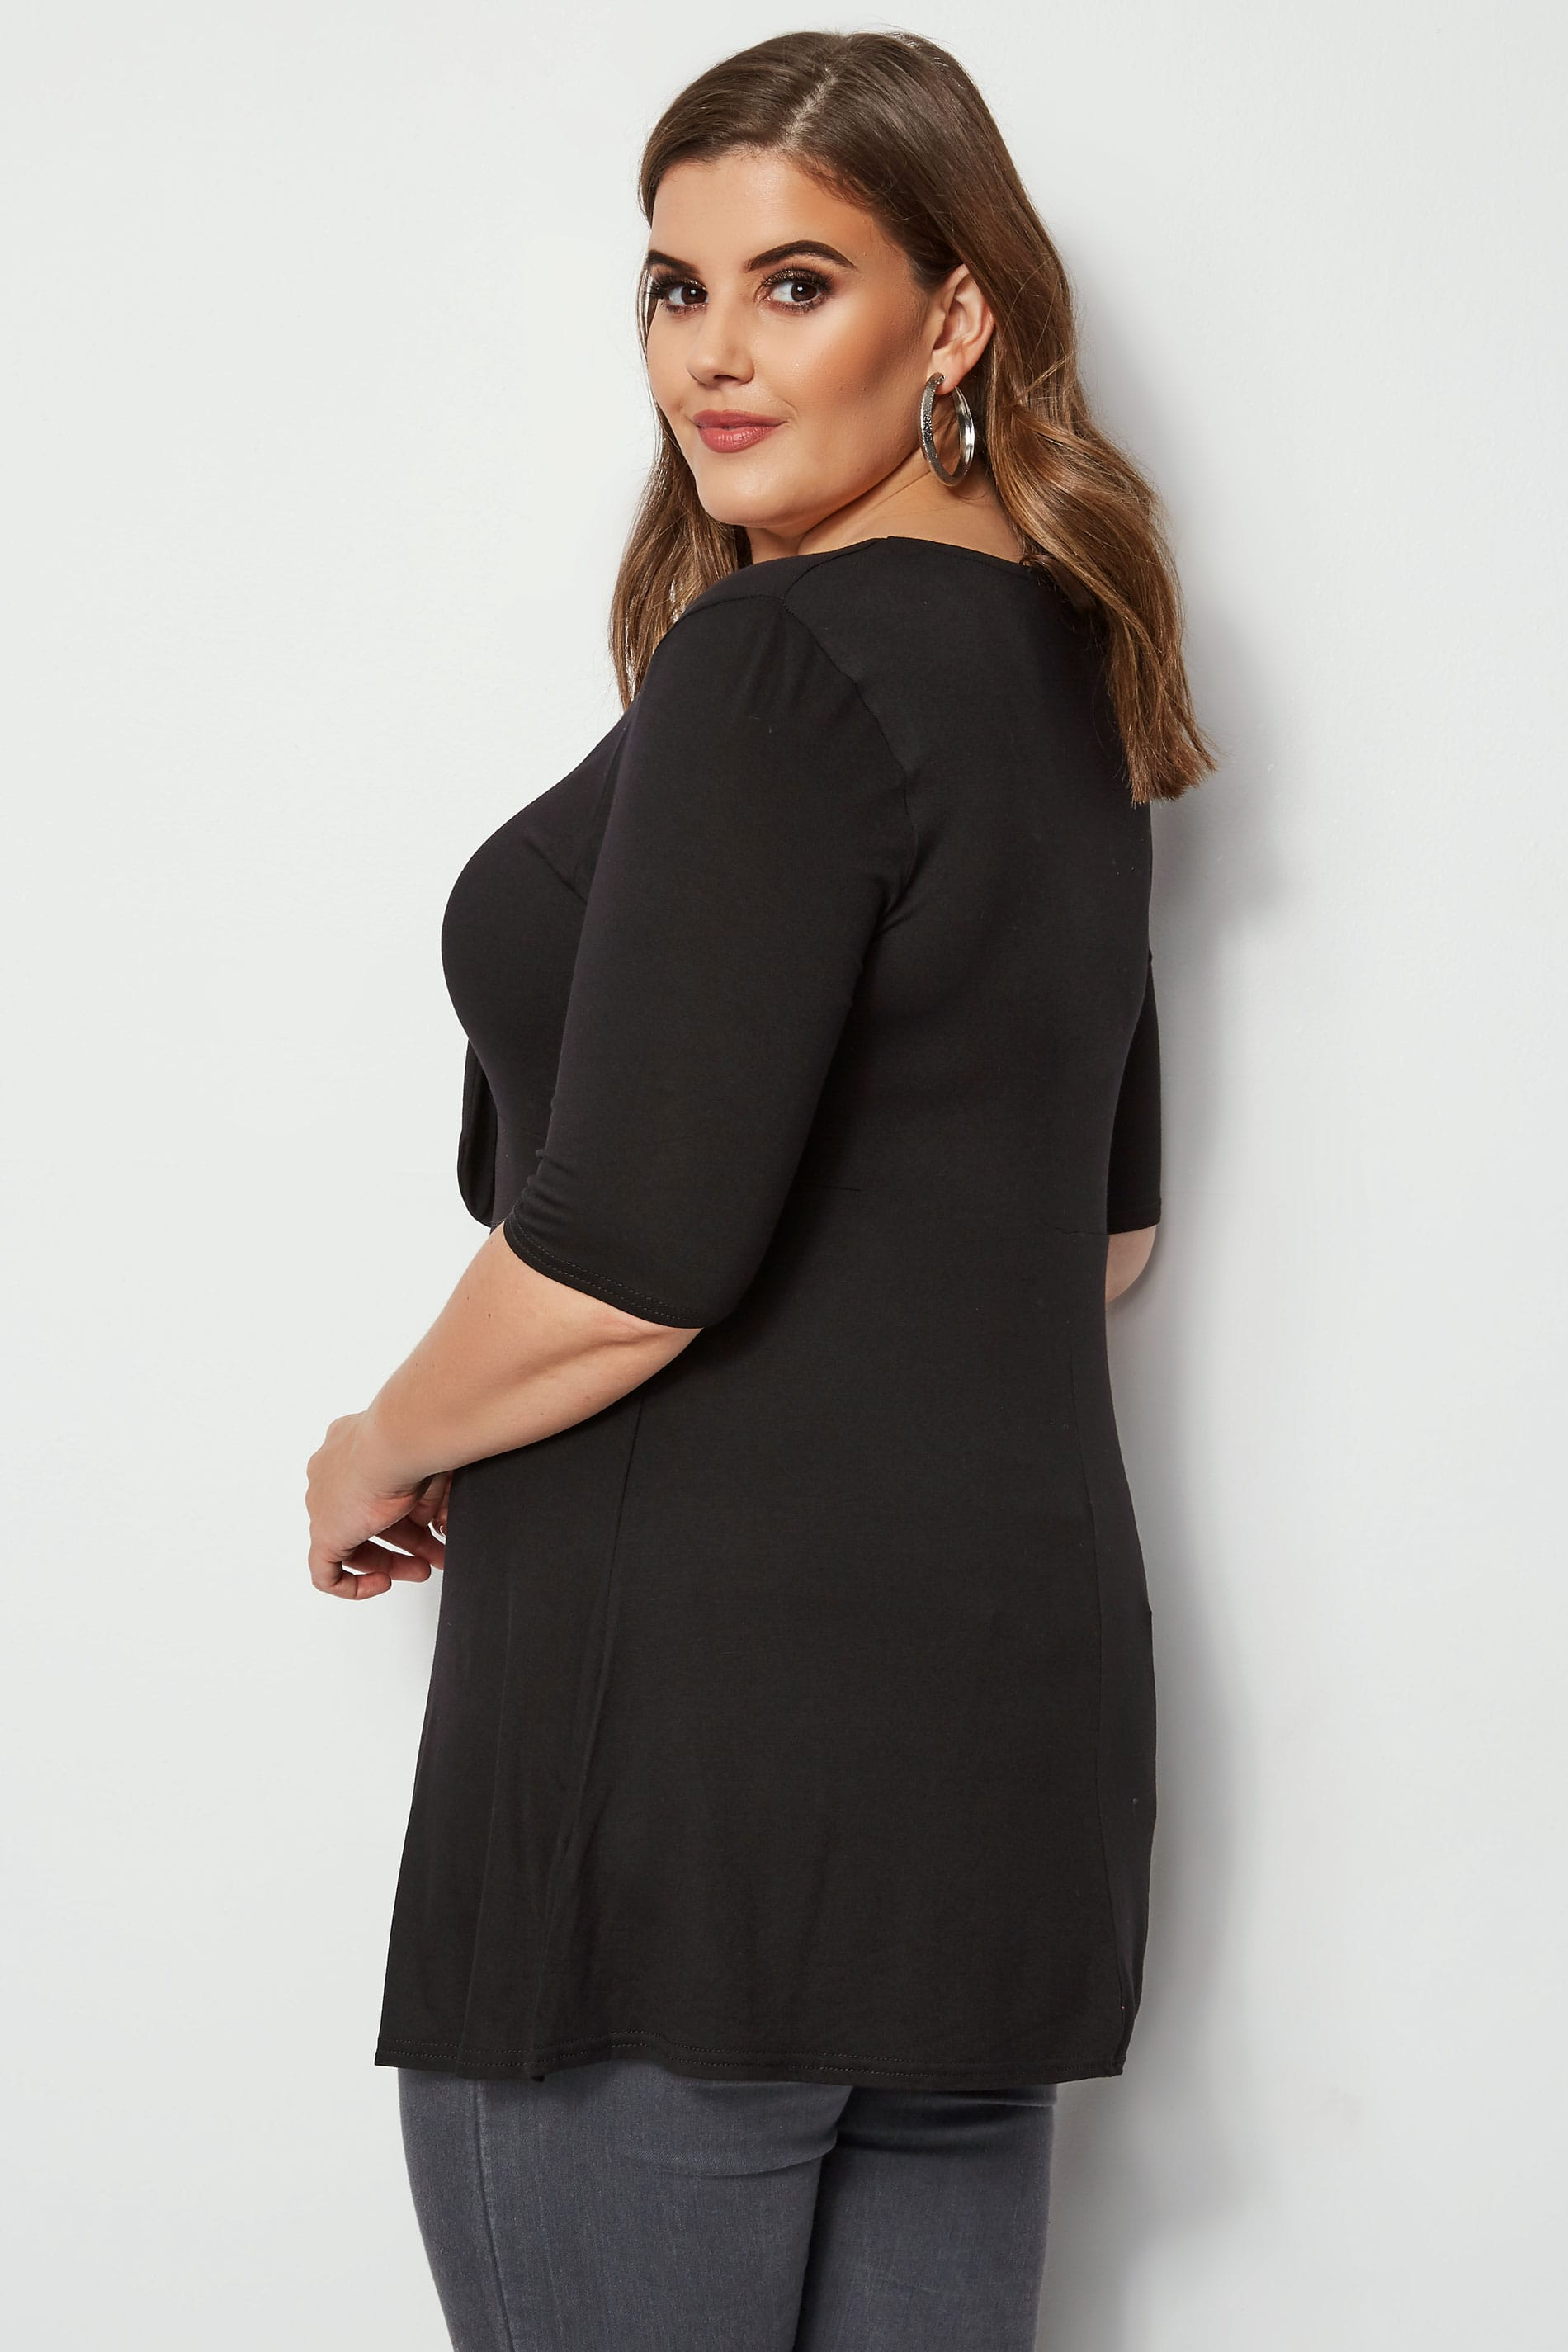 Online dating no reply for 3 days